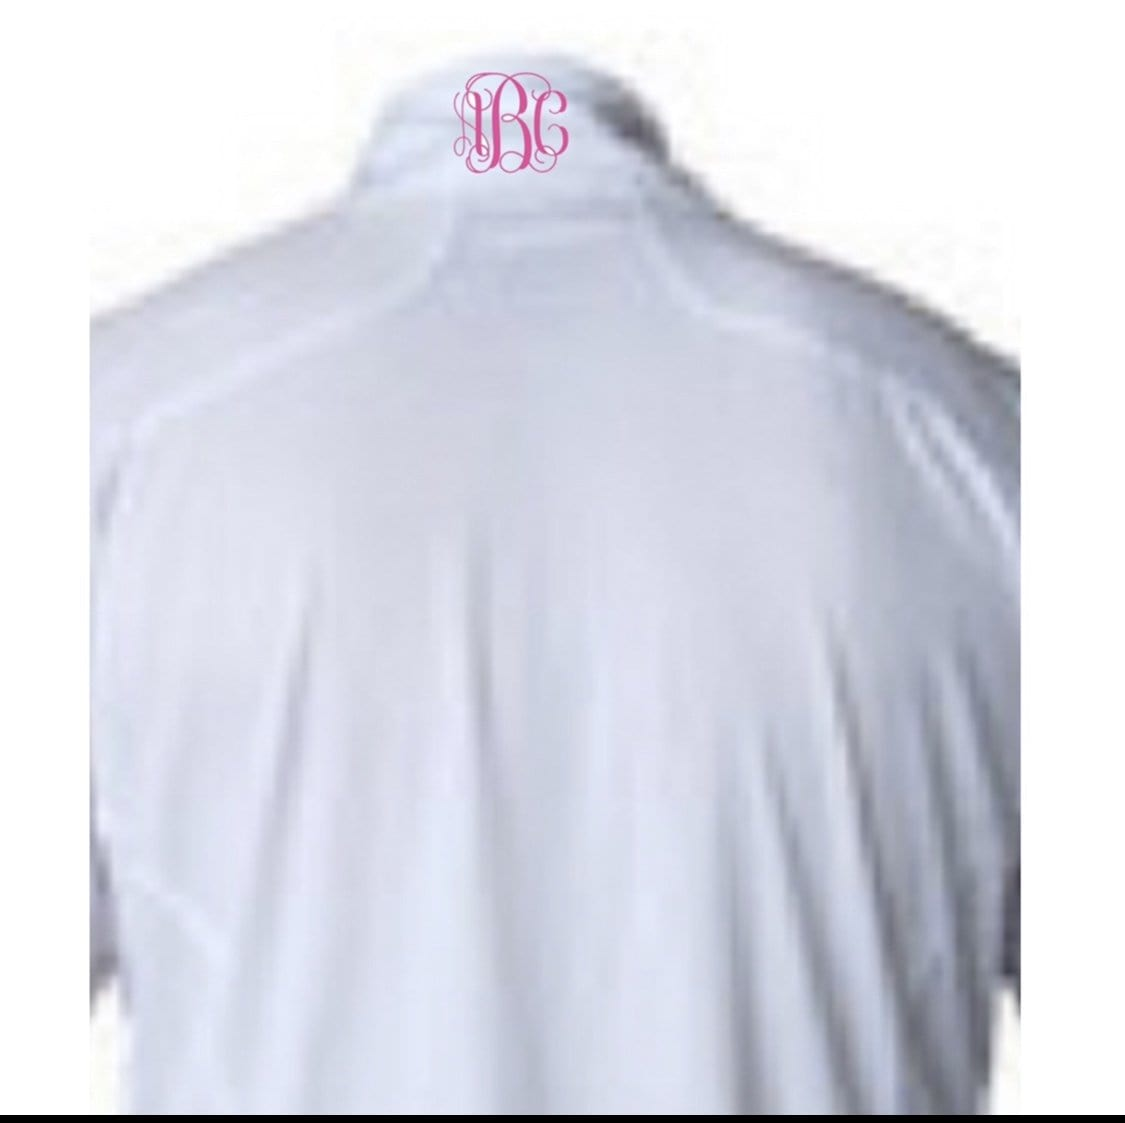 Equestrian Team Apparel Custom Team Shirts Jodi Kelly Dressage White/Pink Women's Sunshirt equestrian team apparel online tack store mobile tack store custom farm apparel custom show stable clothing equestrian lifestyle horse show clothing riding clothes horses equestrian tack store